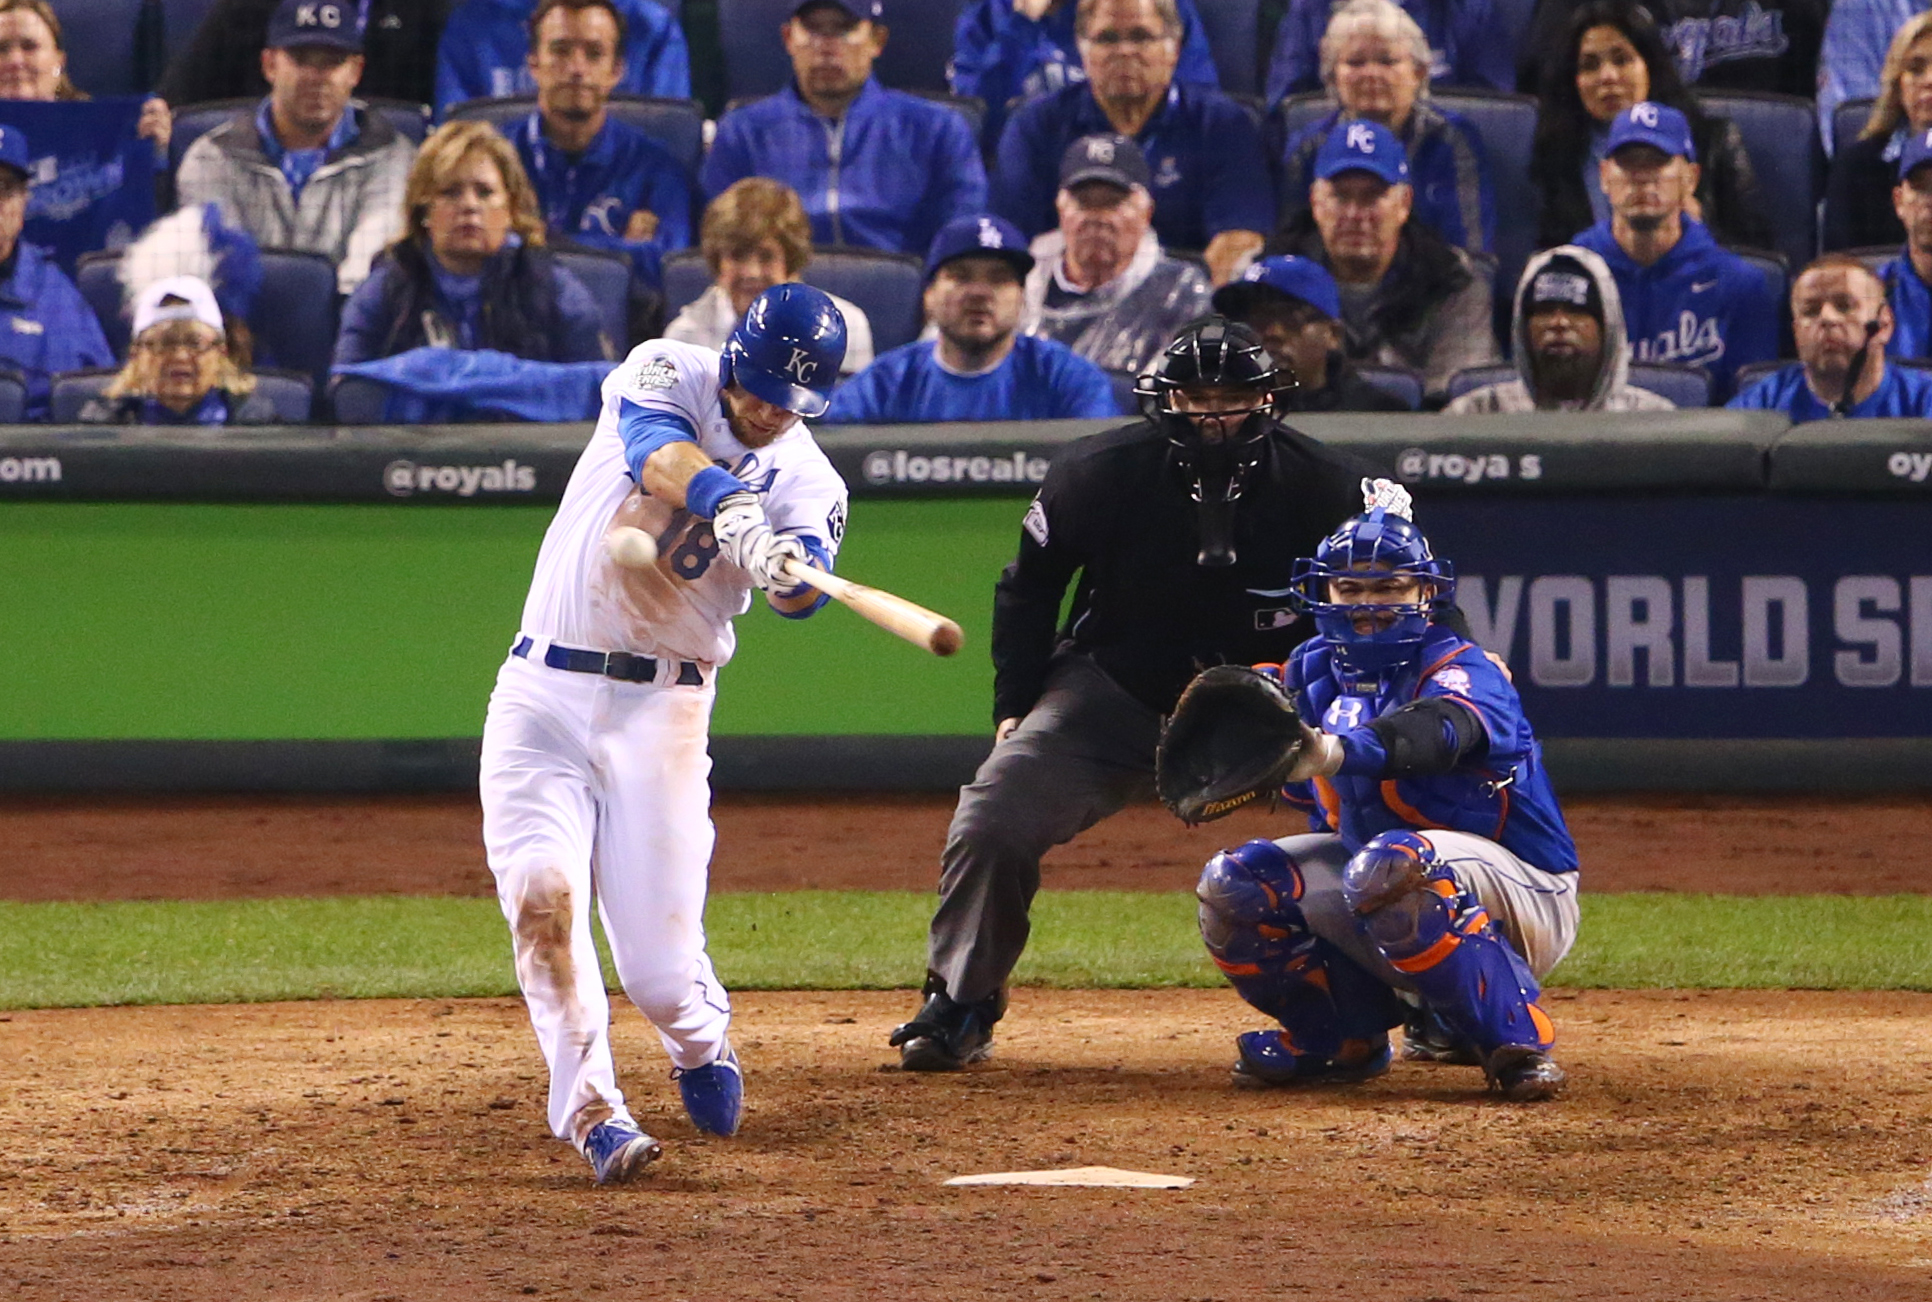 Ben Zobrist and the Nats have been mentioned together countless times over the past few years. Zobrist will finally be a free agent this offseason.